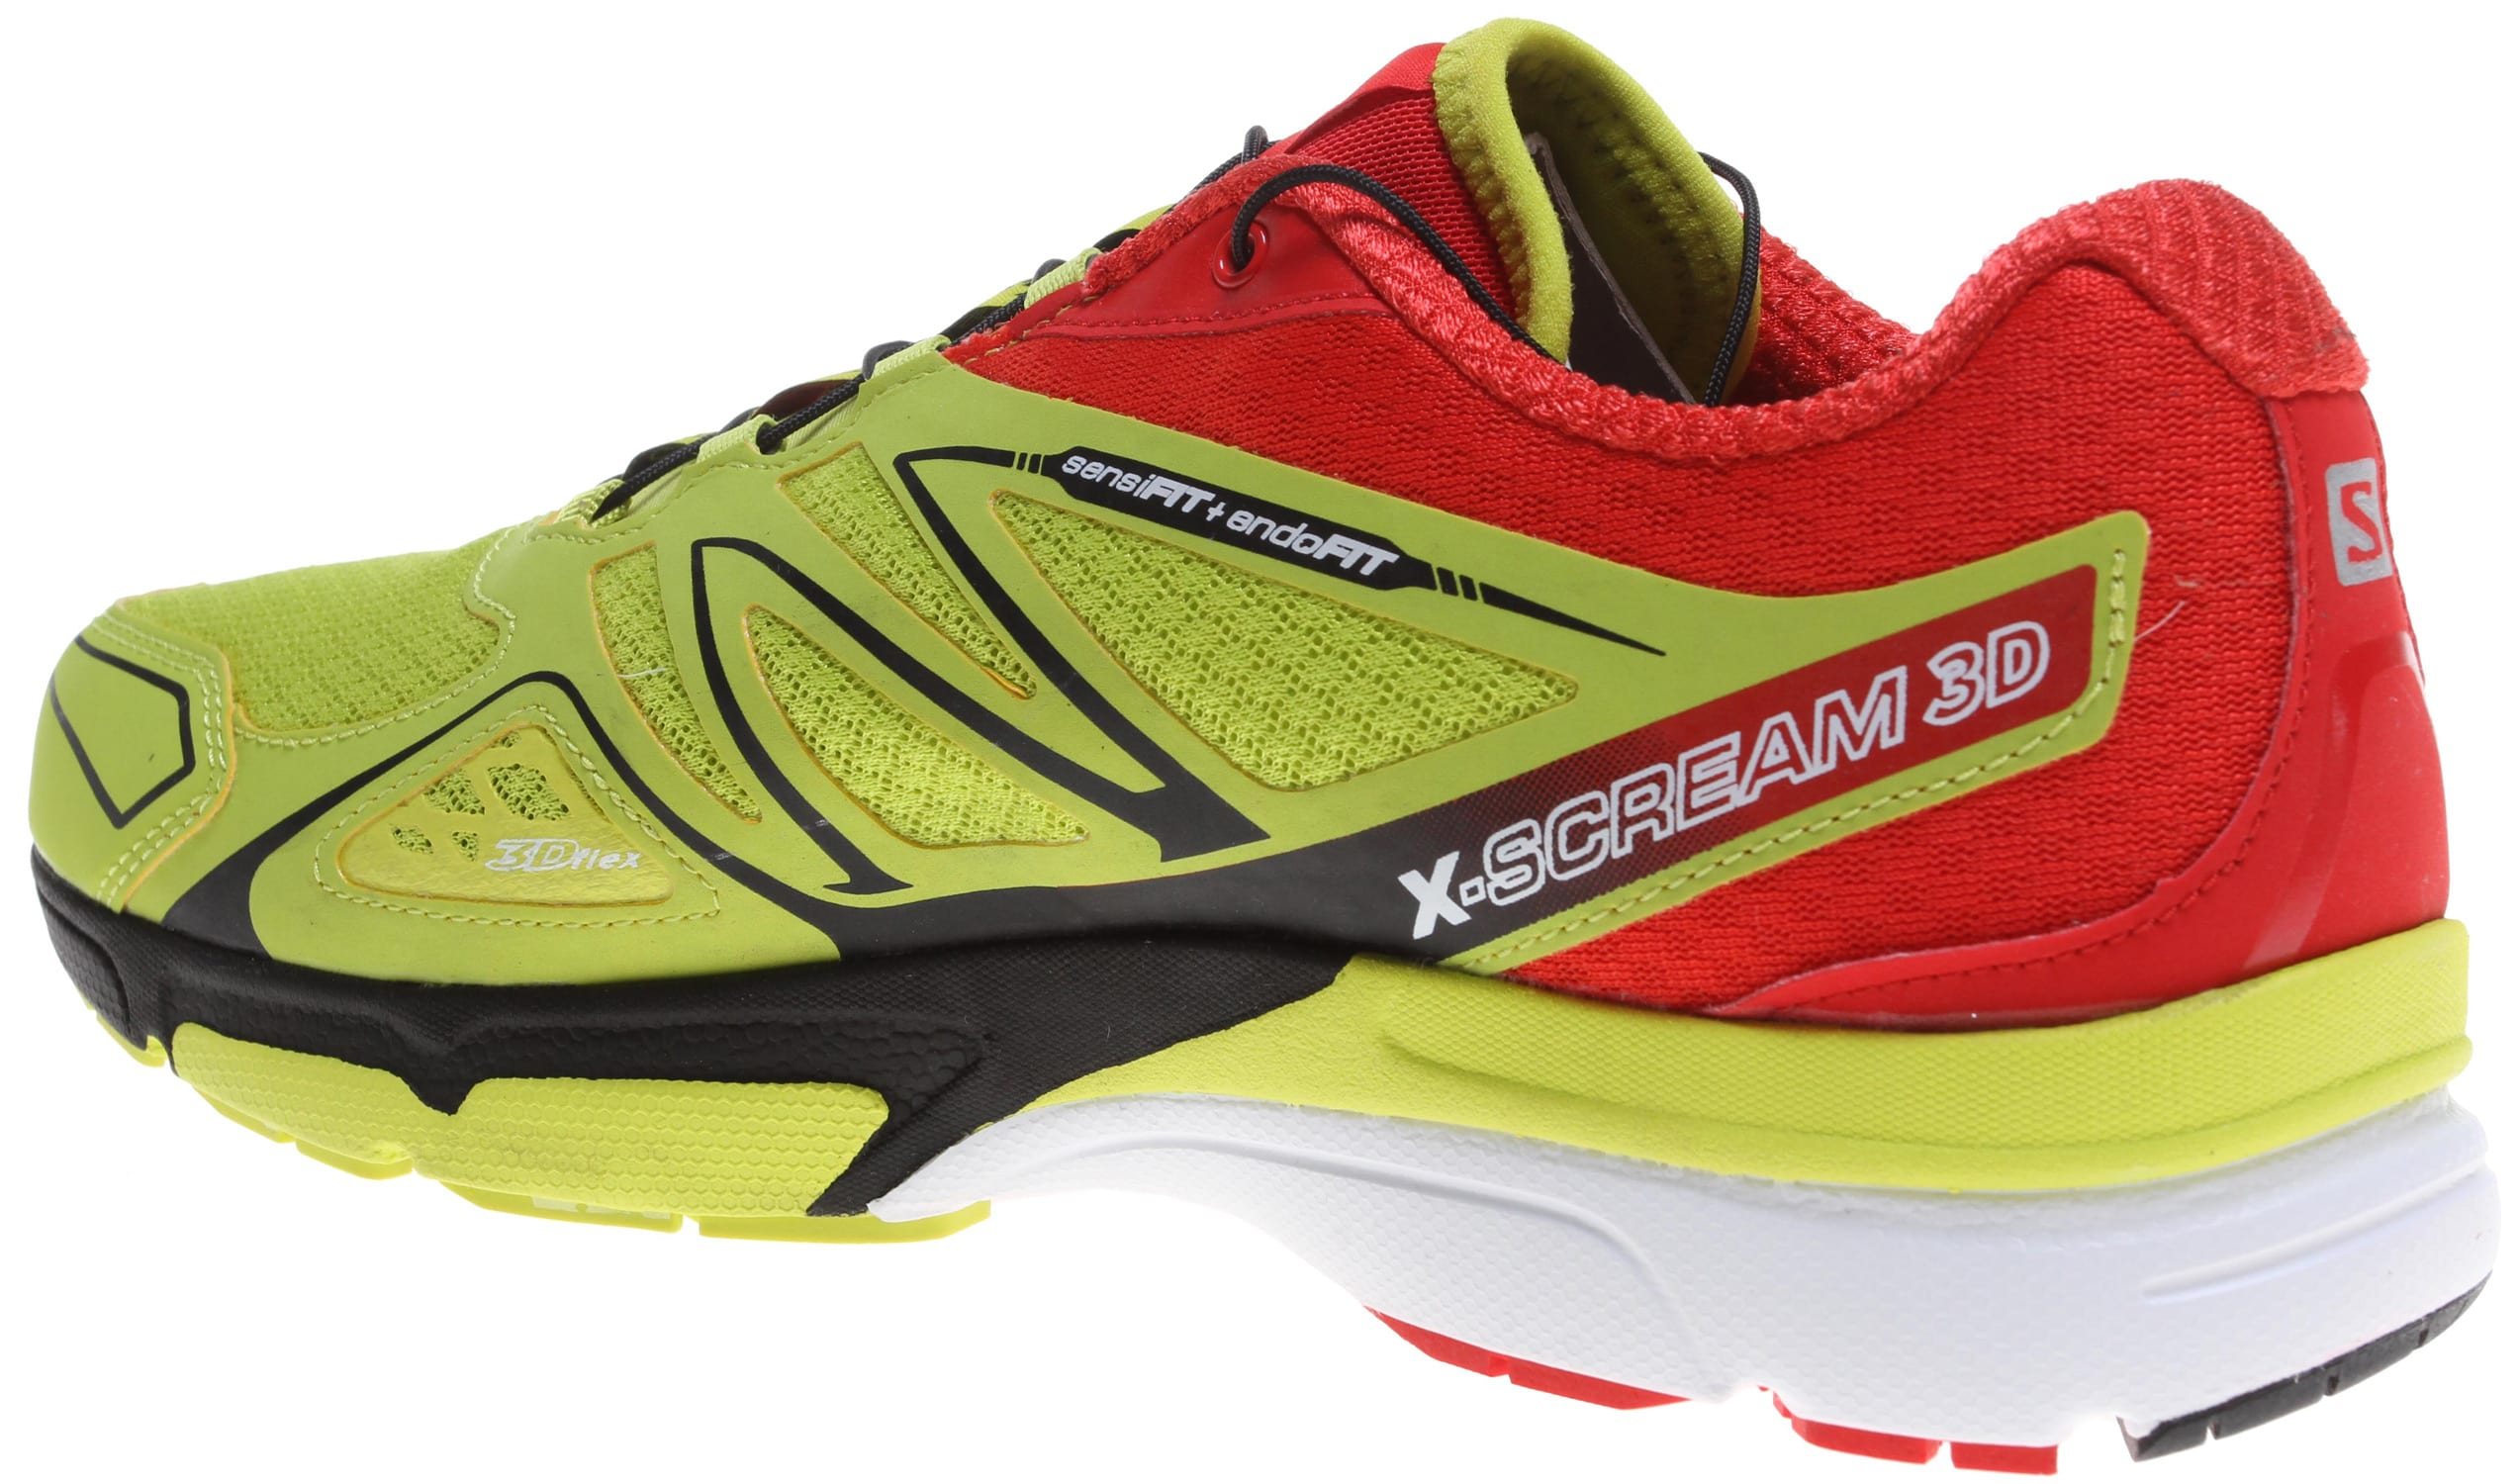 Salomon X-Scream 3D Trail Running Shoes - thumbnail 3 b781bbd96cc